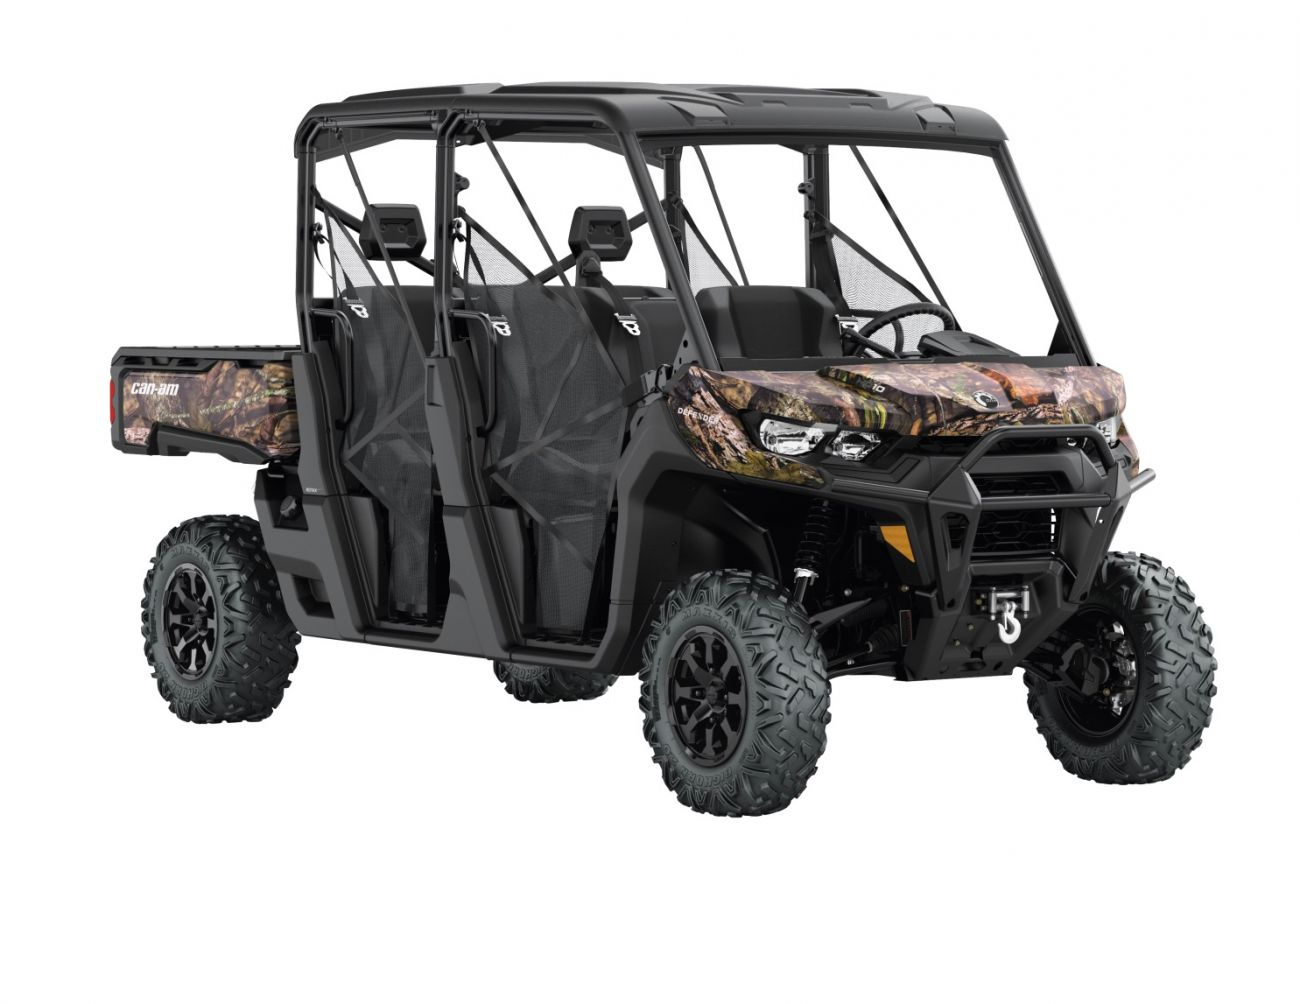 POWERSPORTS CANAM ORV_IMAGERY DEFENDER MY21 ORV_SSV_MY21_DEF_Max_XT_HD10HO_120720135430_lowres